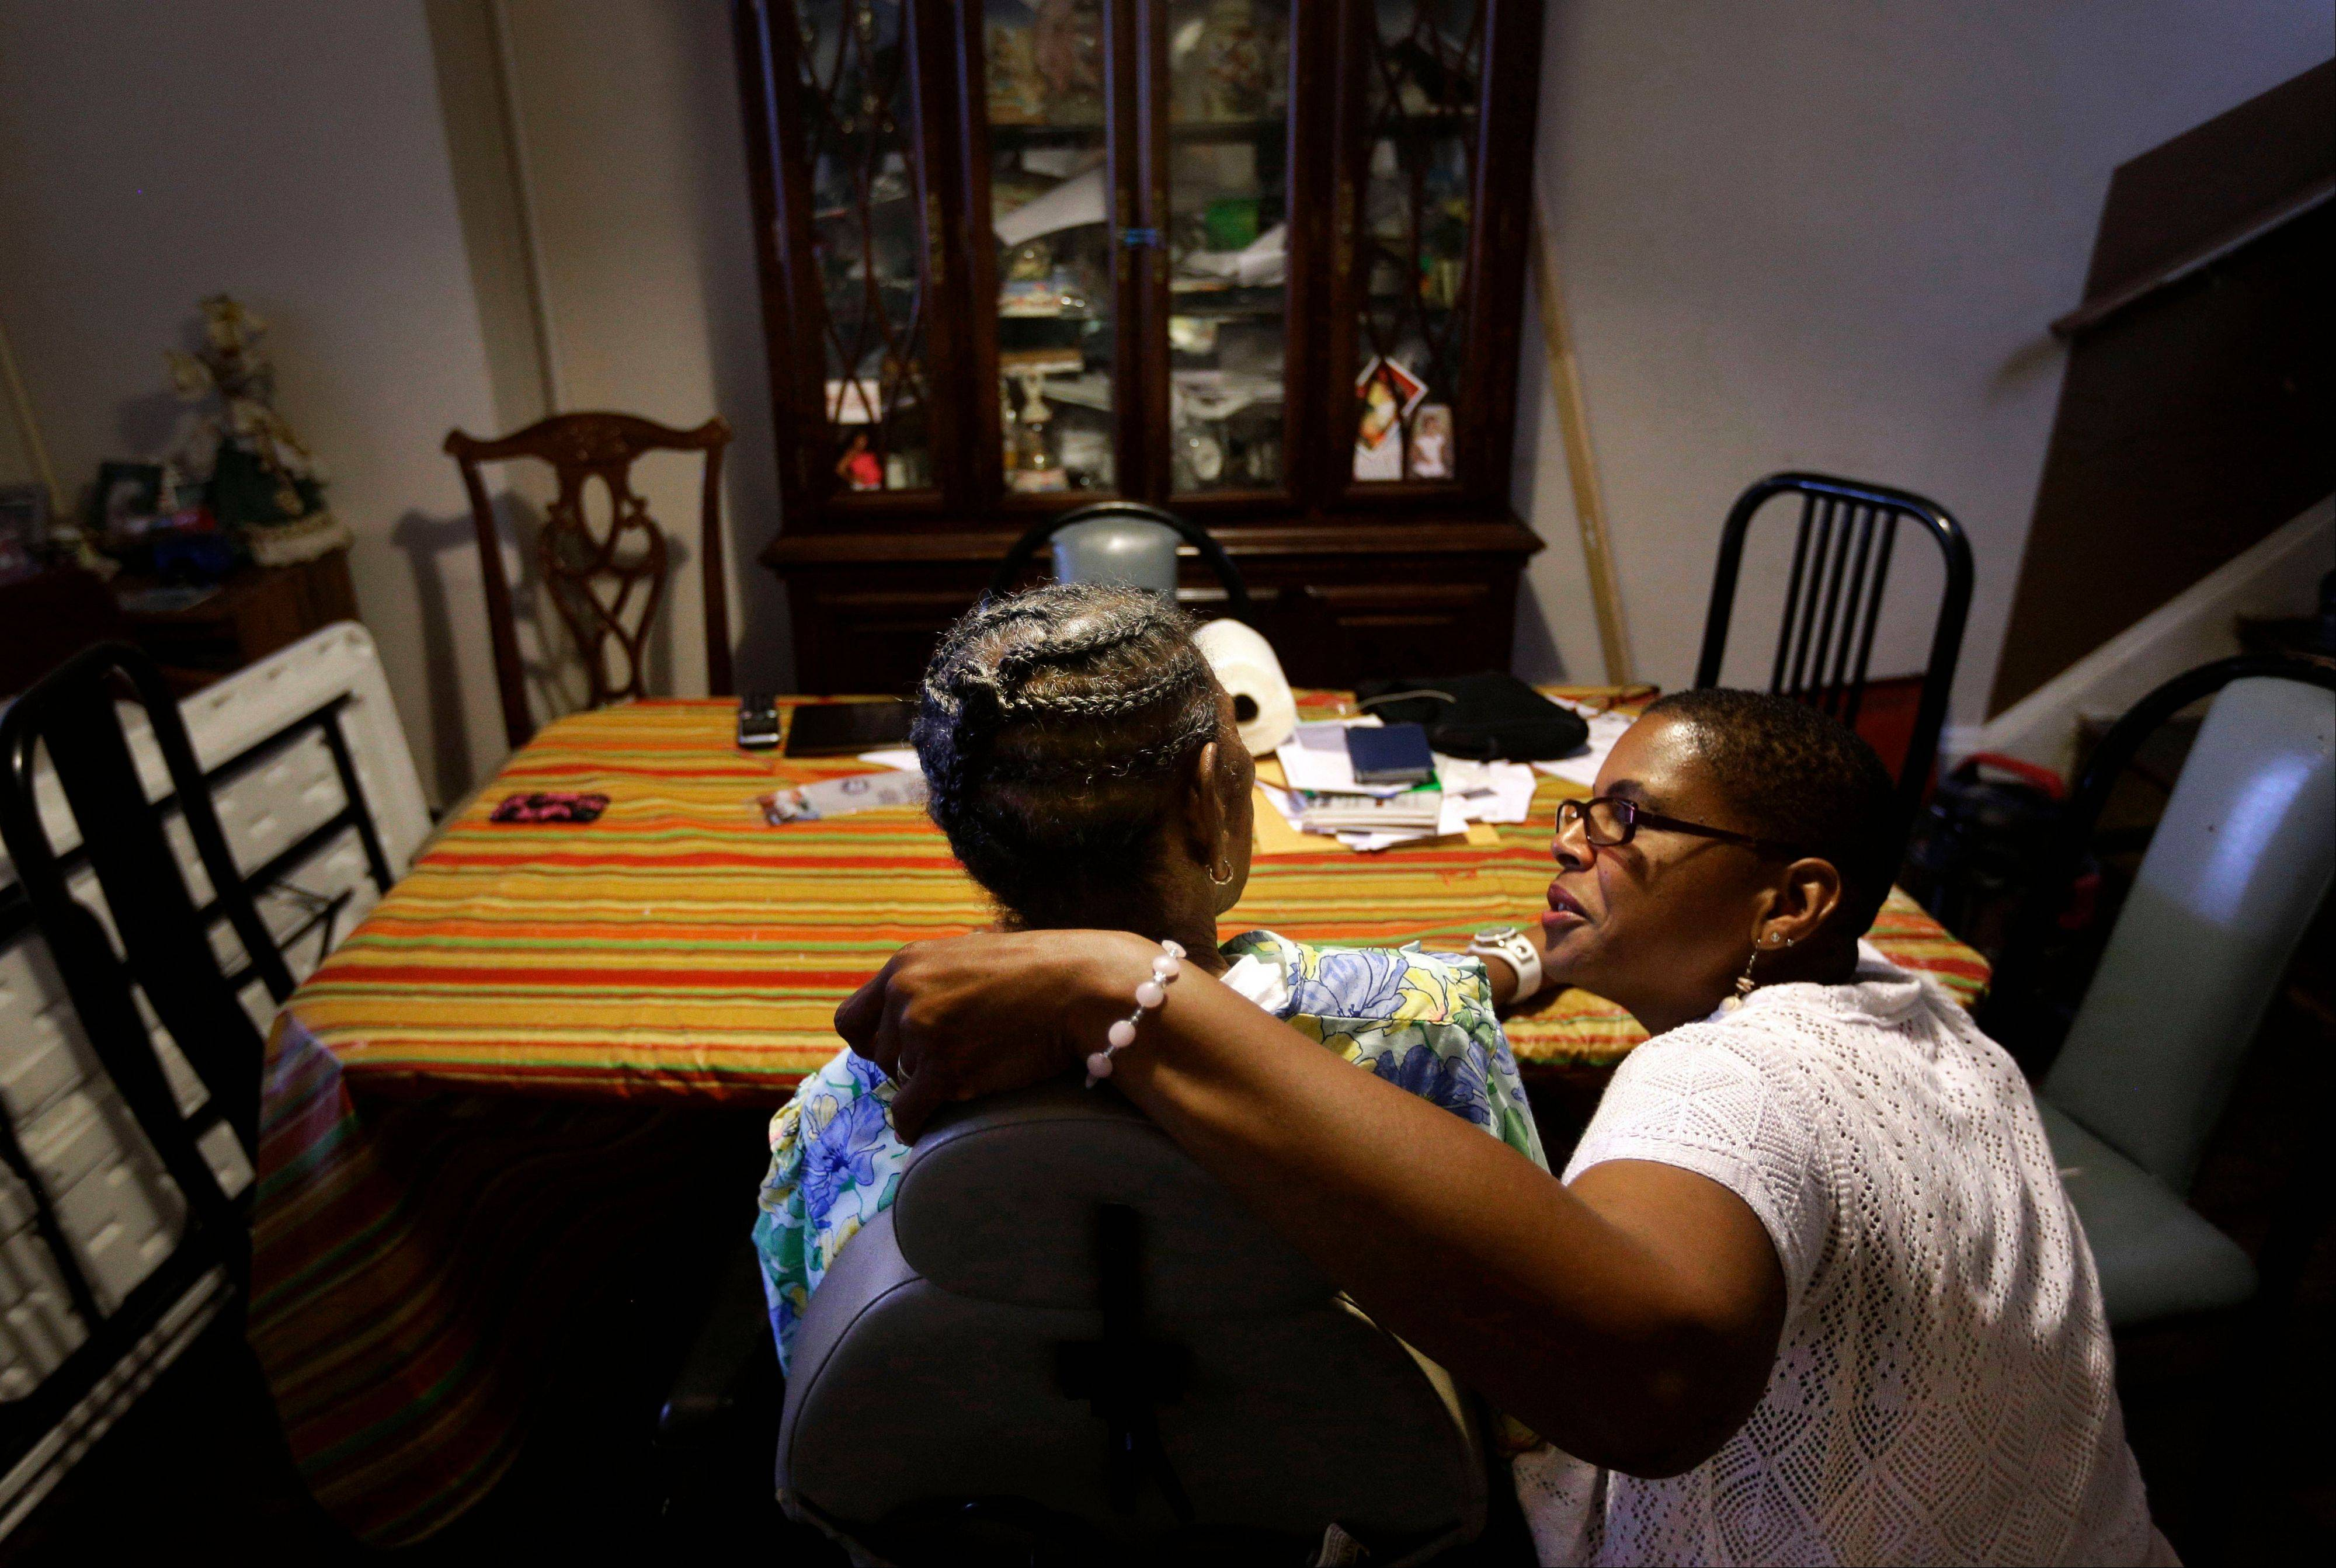 Occupational therapist Ally Evelyn-Gustave, right, speaks with Alberta Hough, who suffers from Parkinson's disease, in Hough's home in Baltimore. Hough struggles to feed herself a snack, her arms shaking badly from Parkinson's disease.